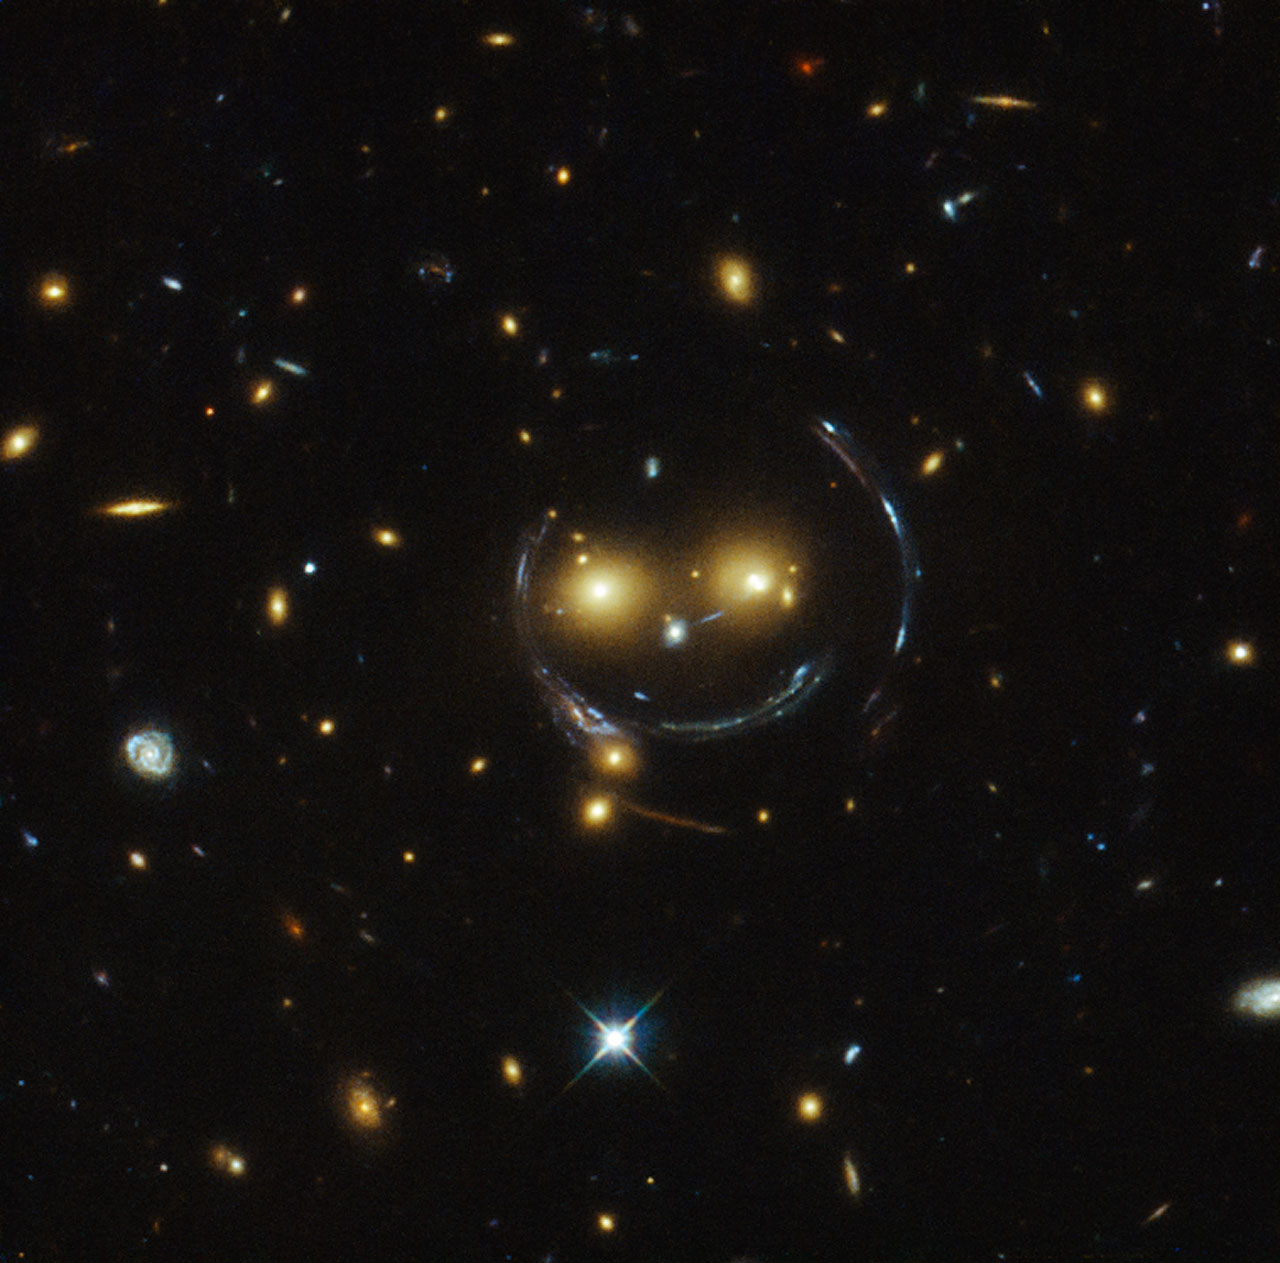 Real pictures from hubble telescope